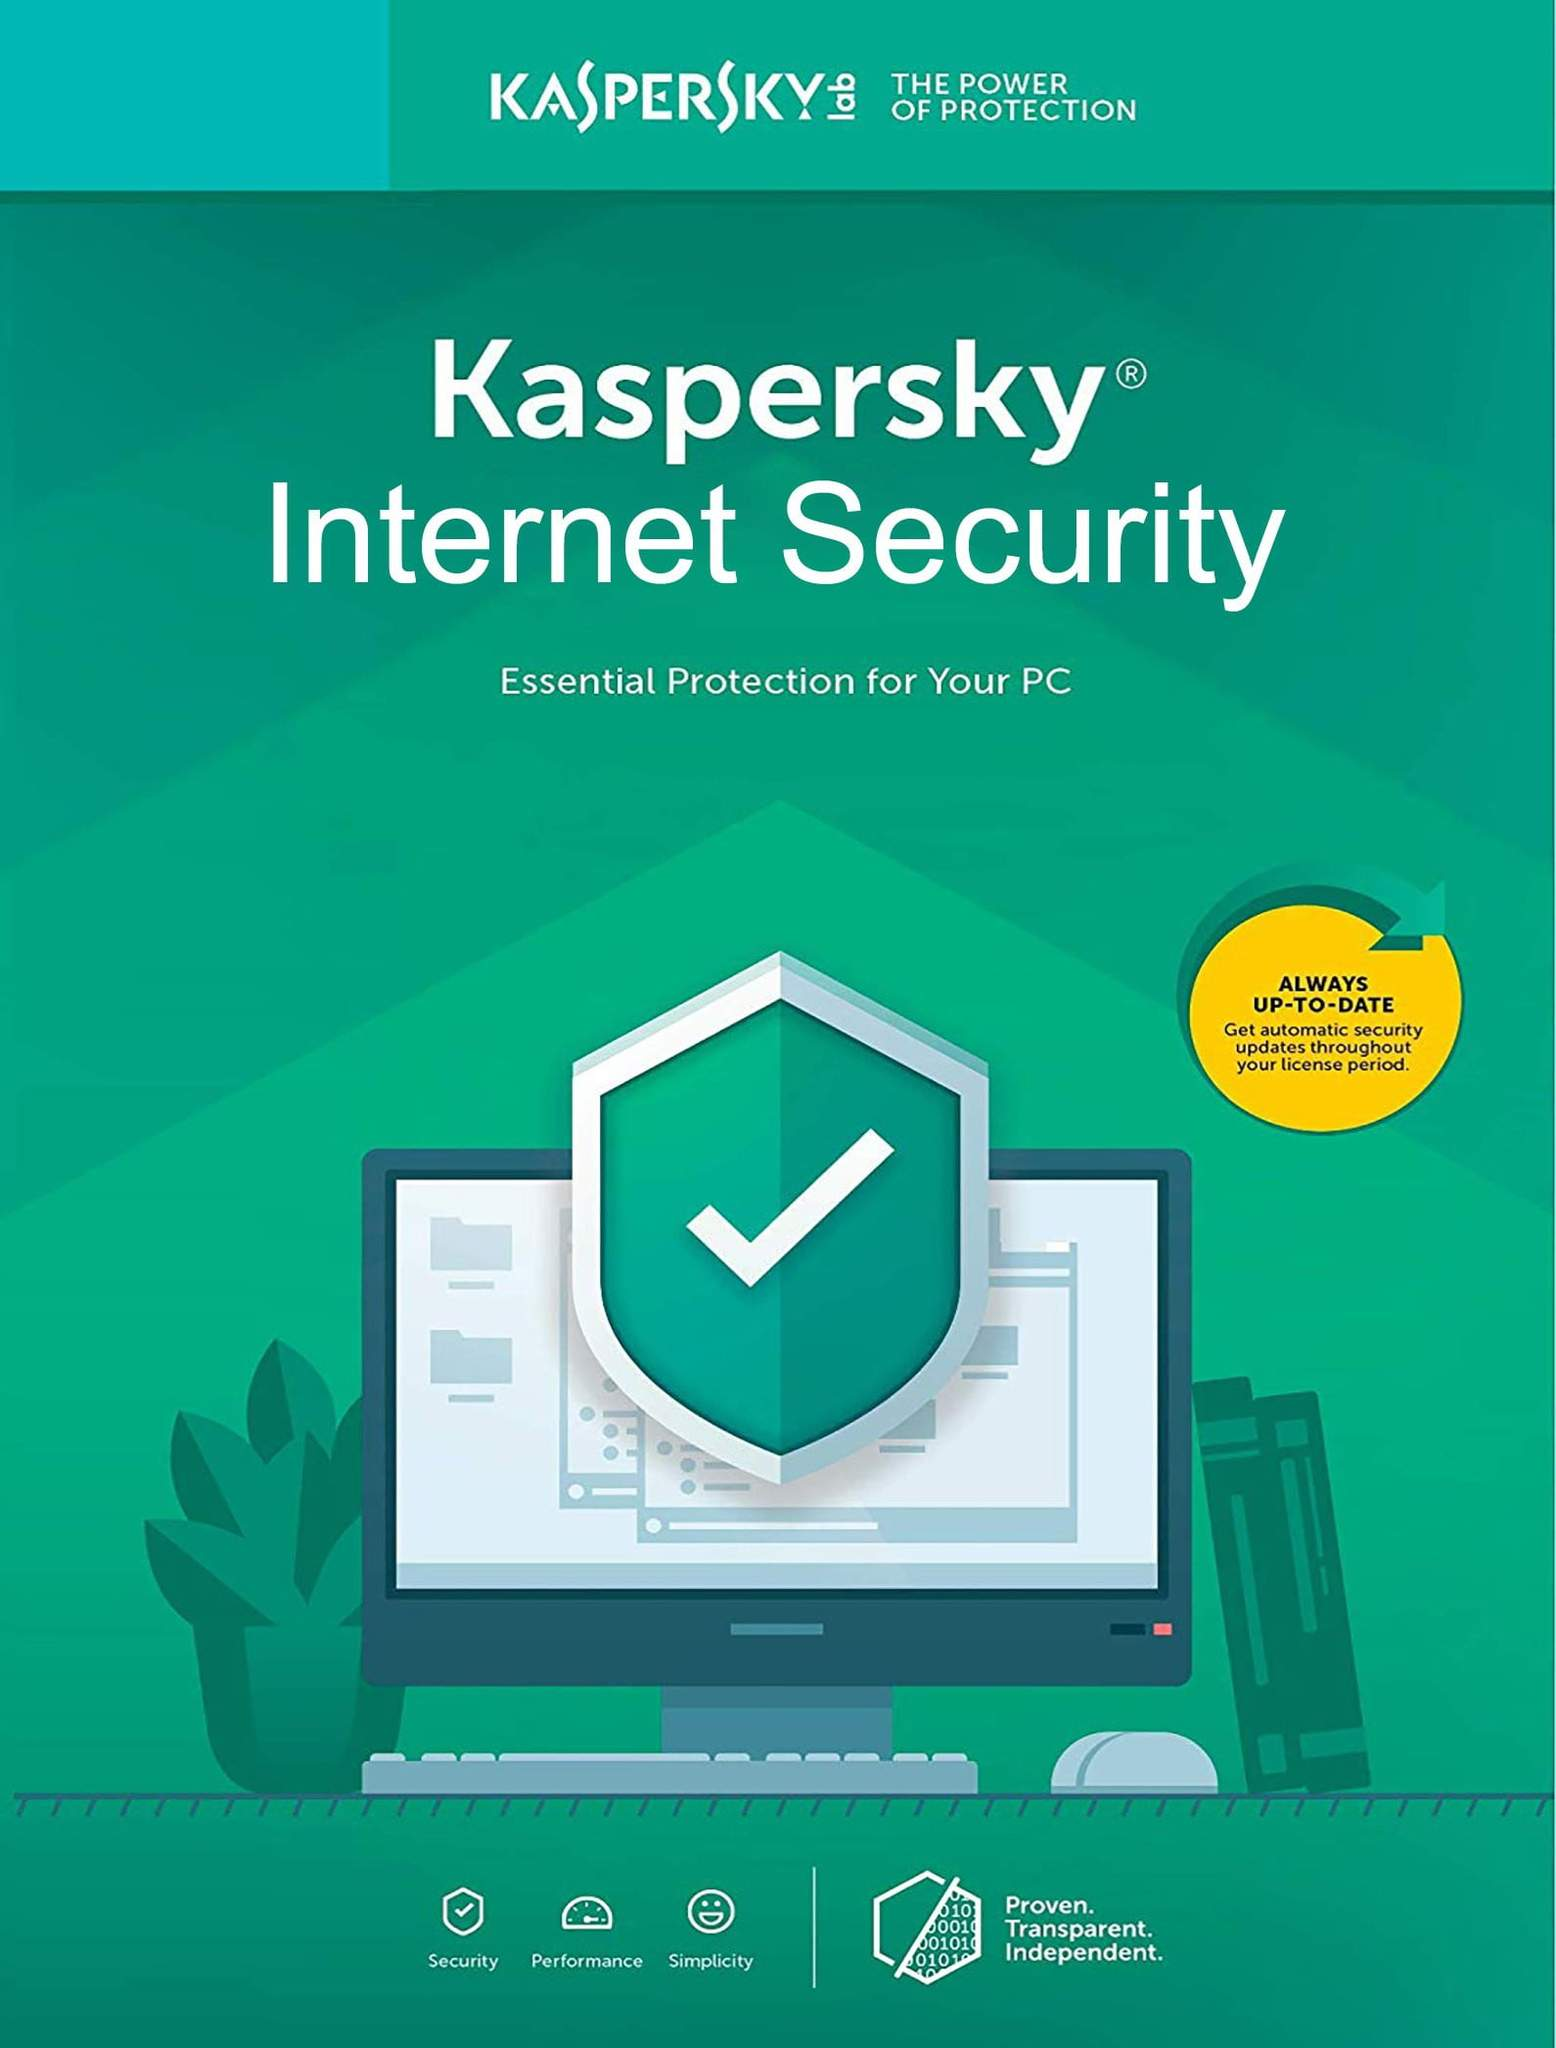 kasperskyinternetsecurity2020